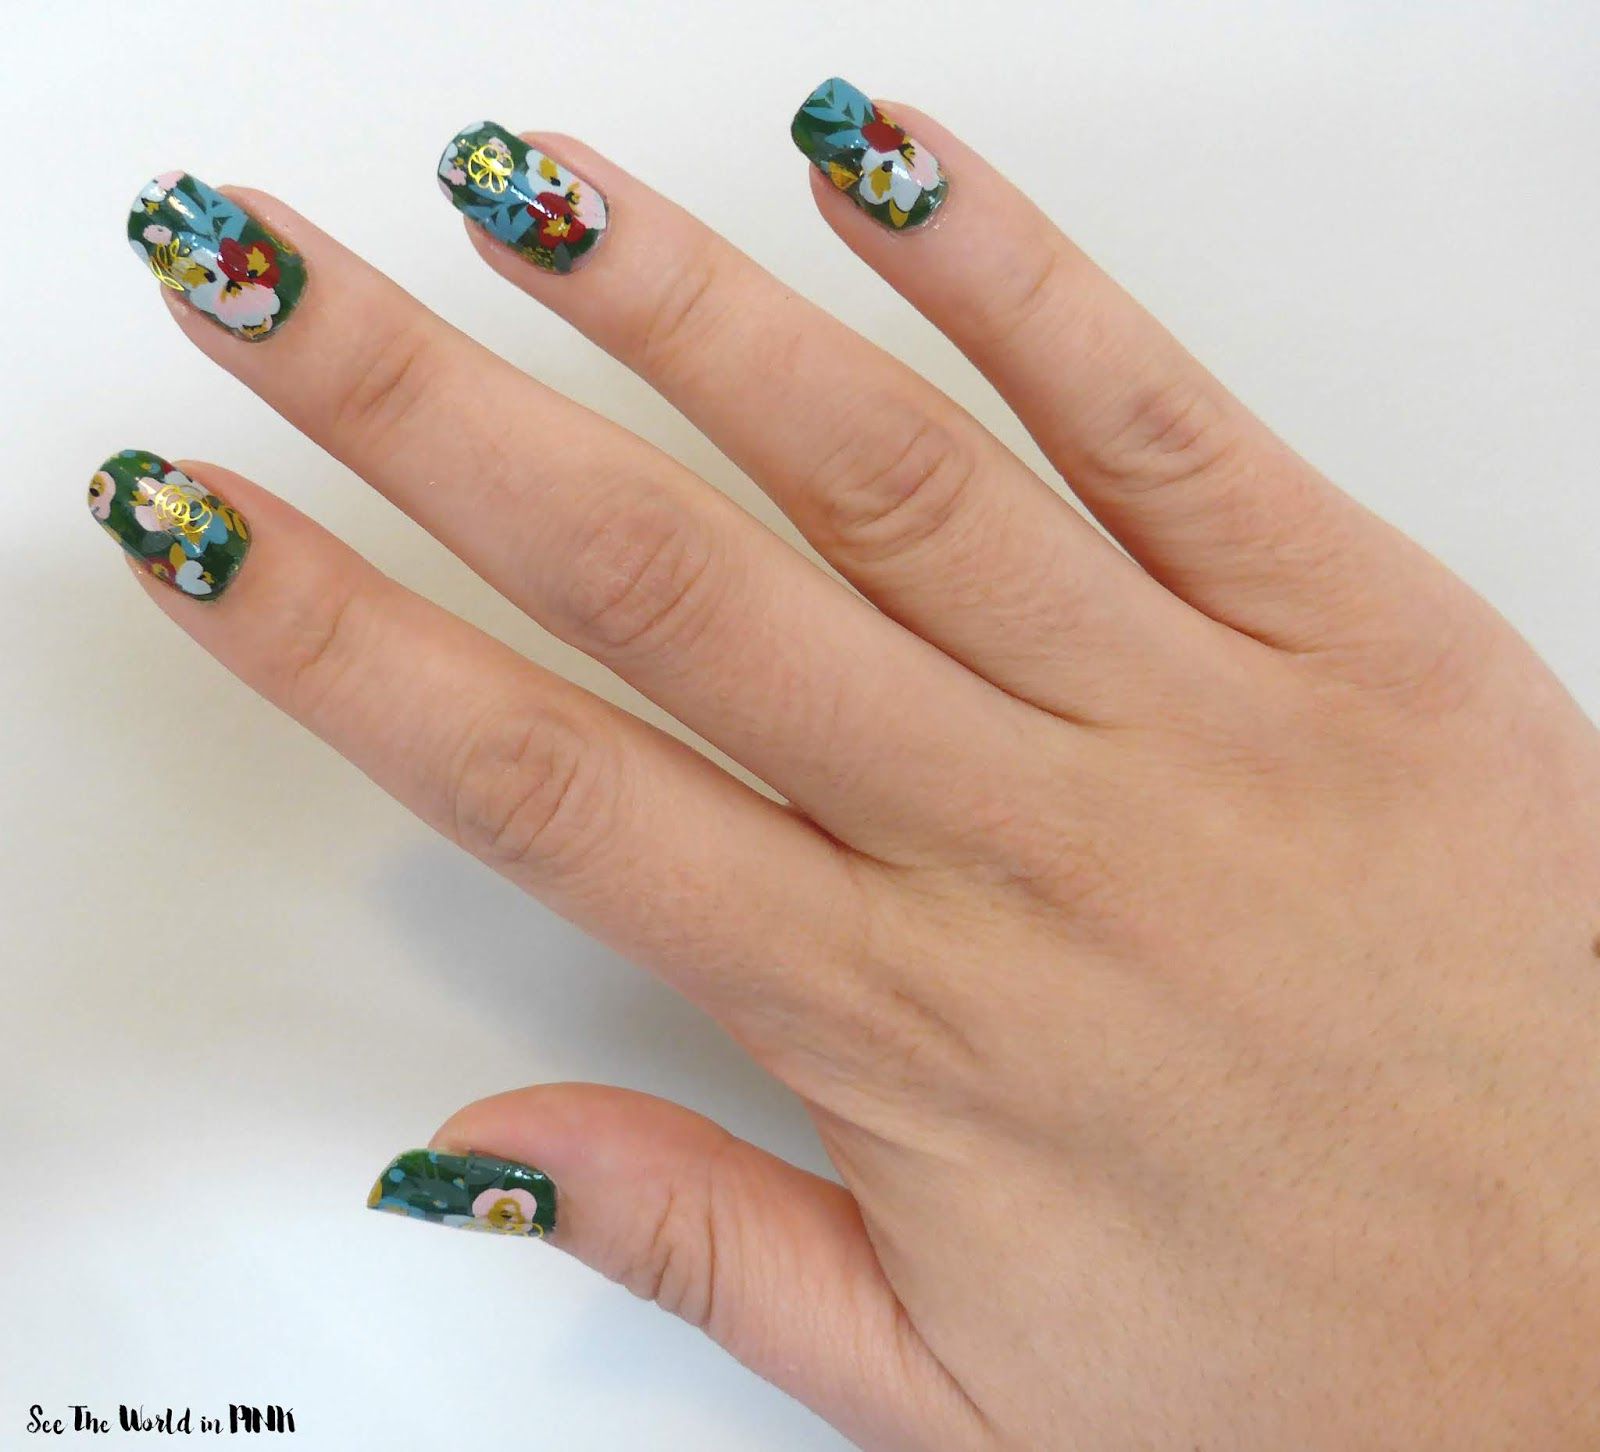 Manicure Monday - Spring Bloom Nails